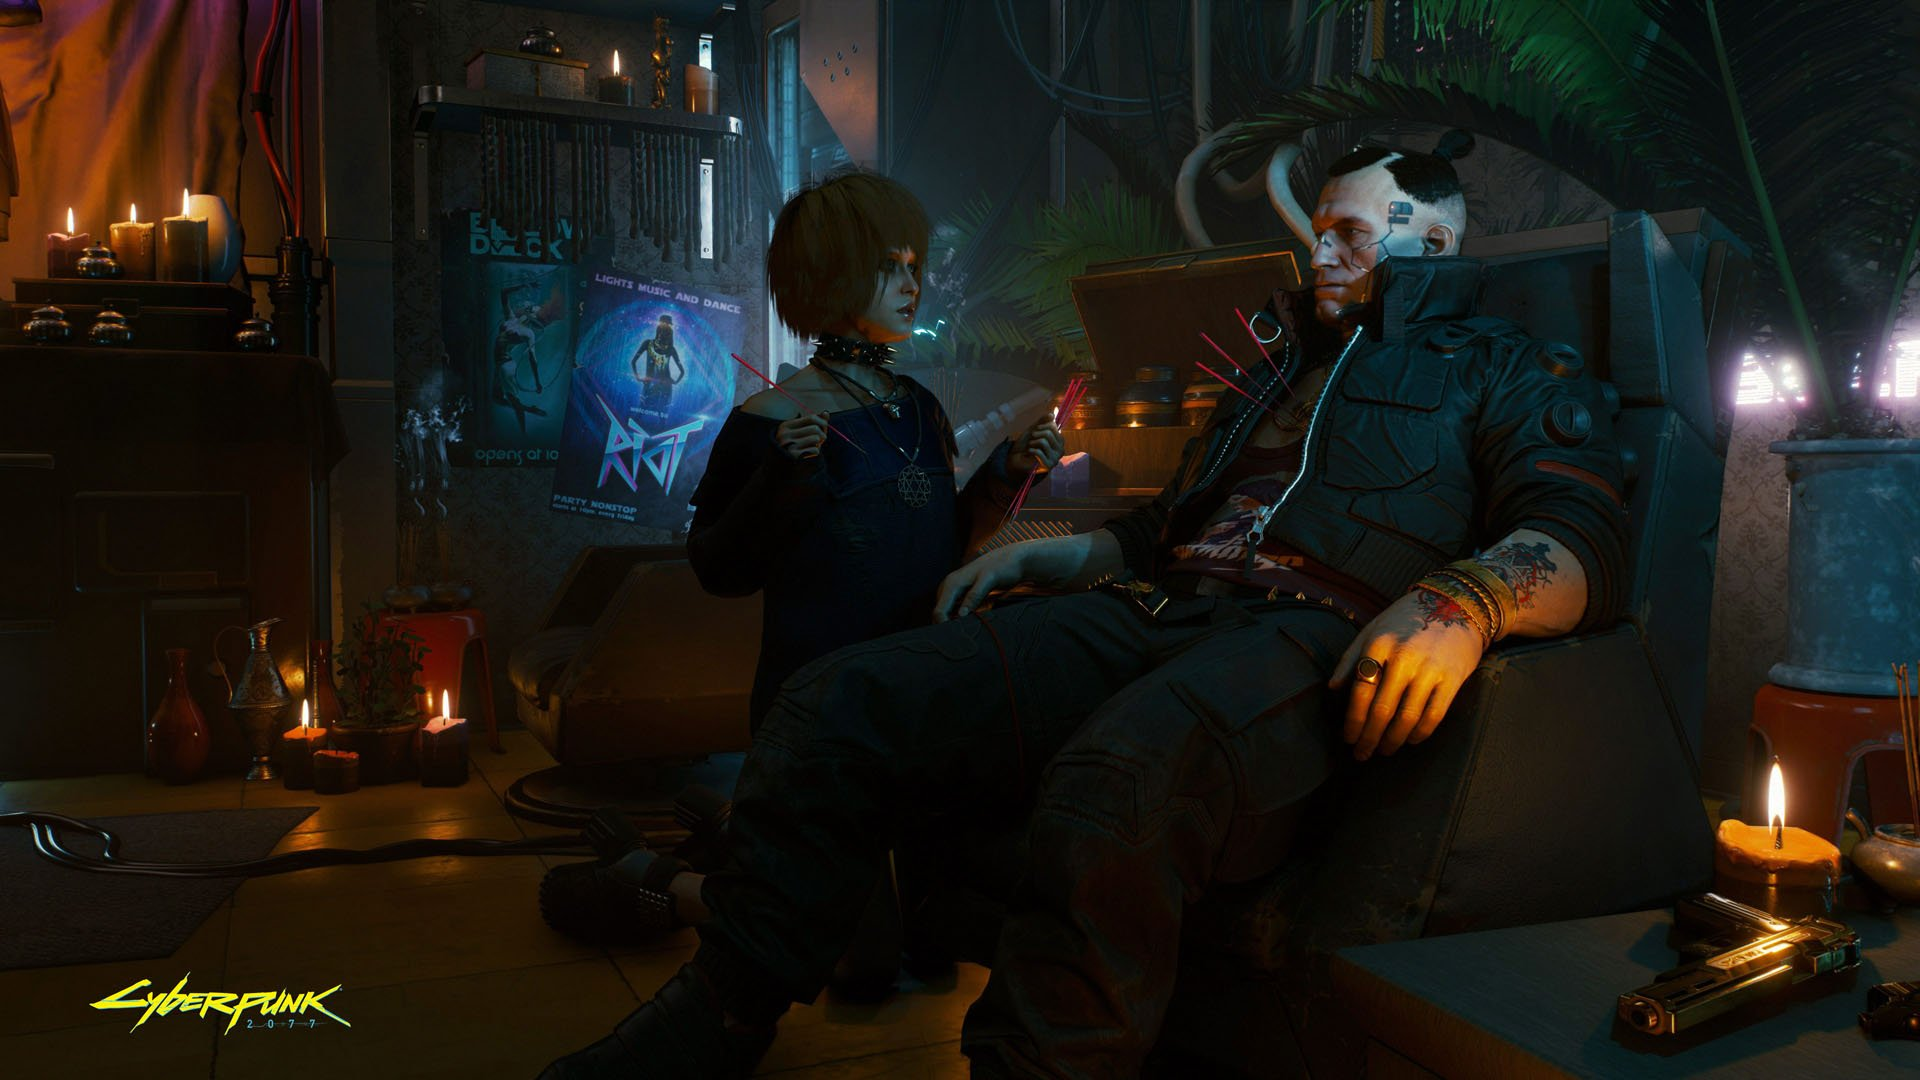 Cyberpunk 2077 to release sometime between now and 2021